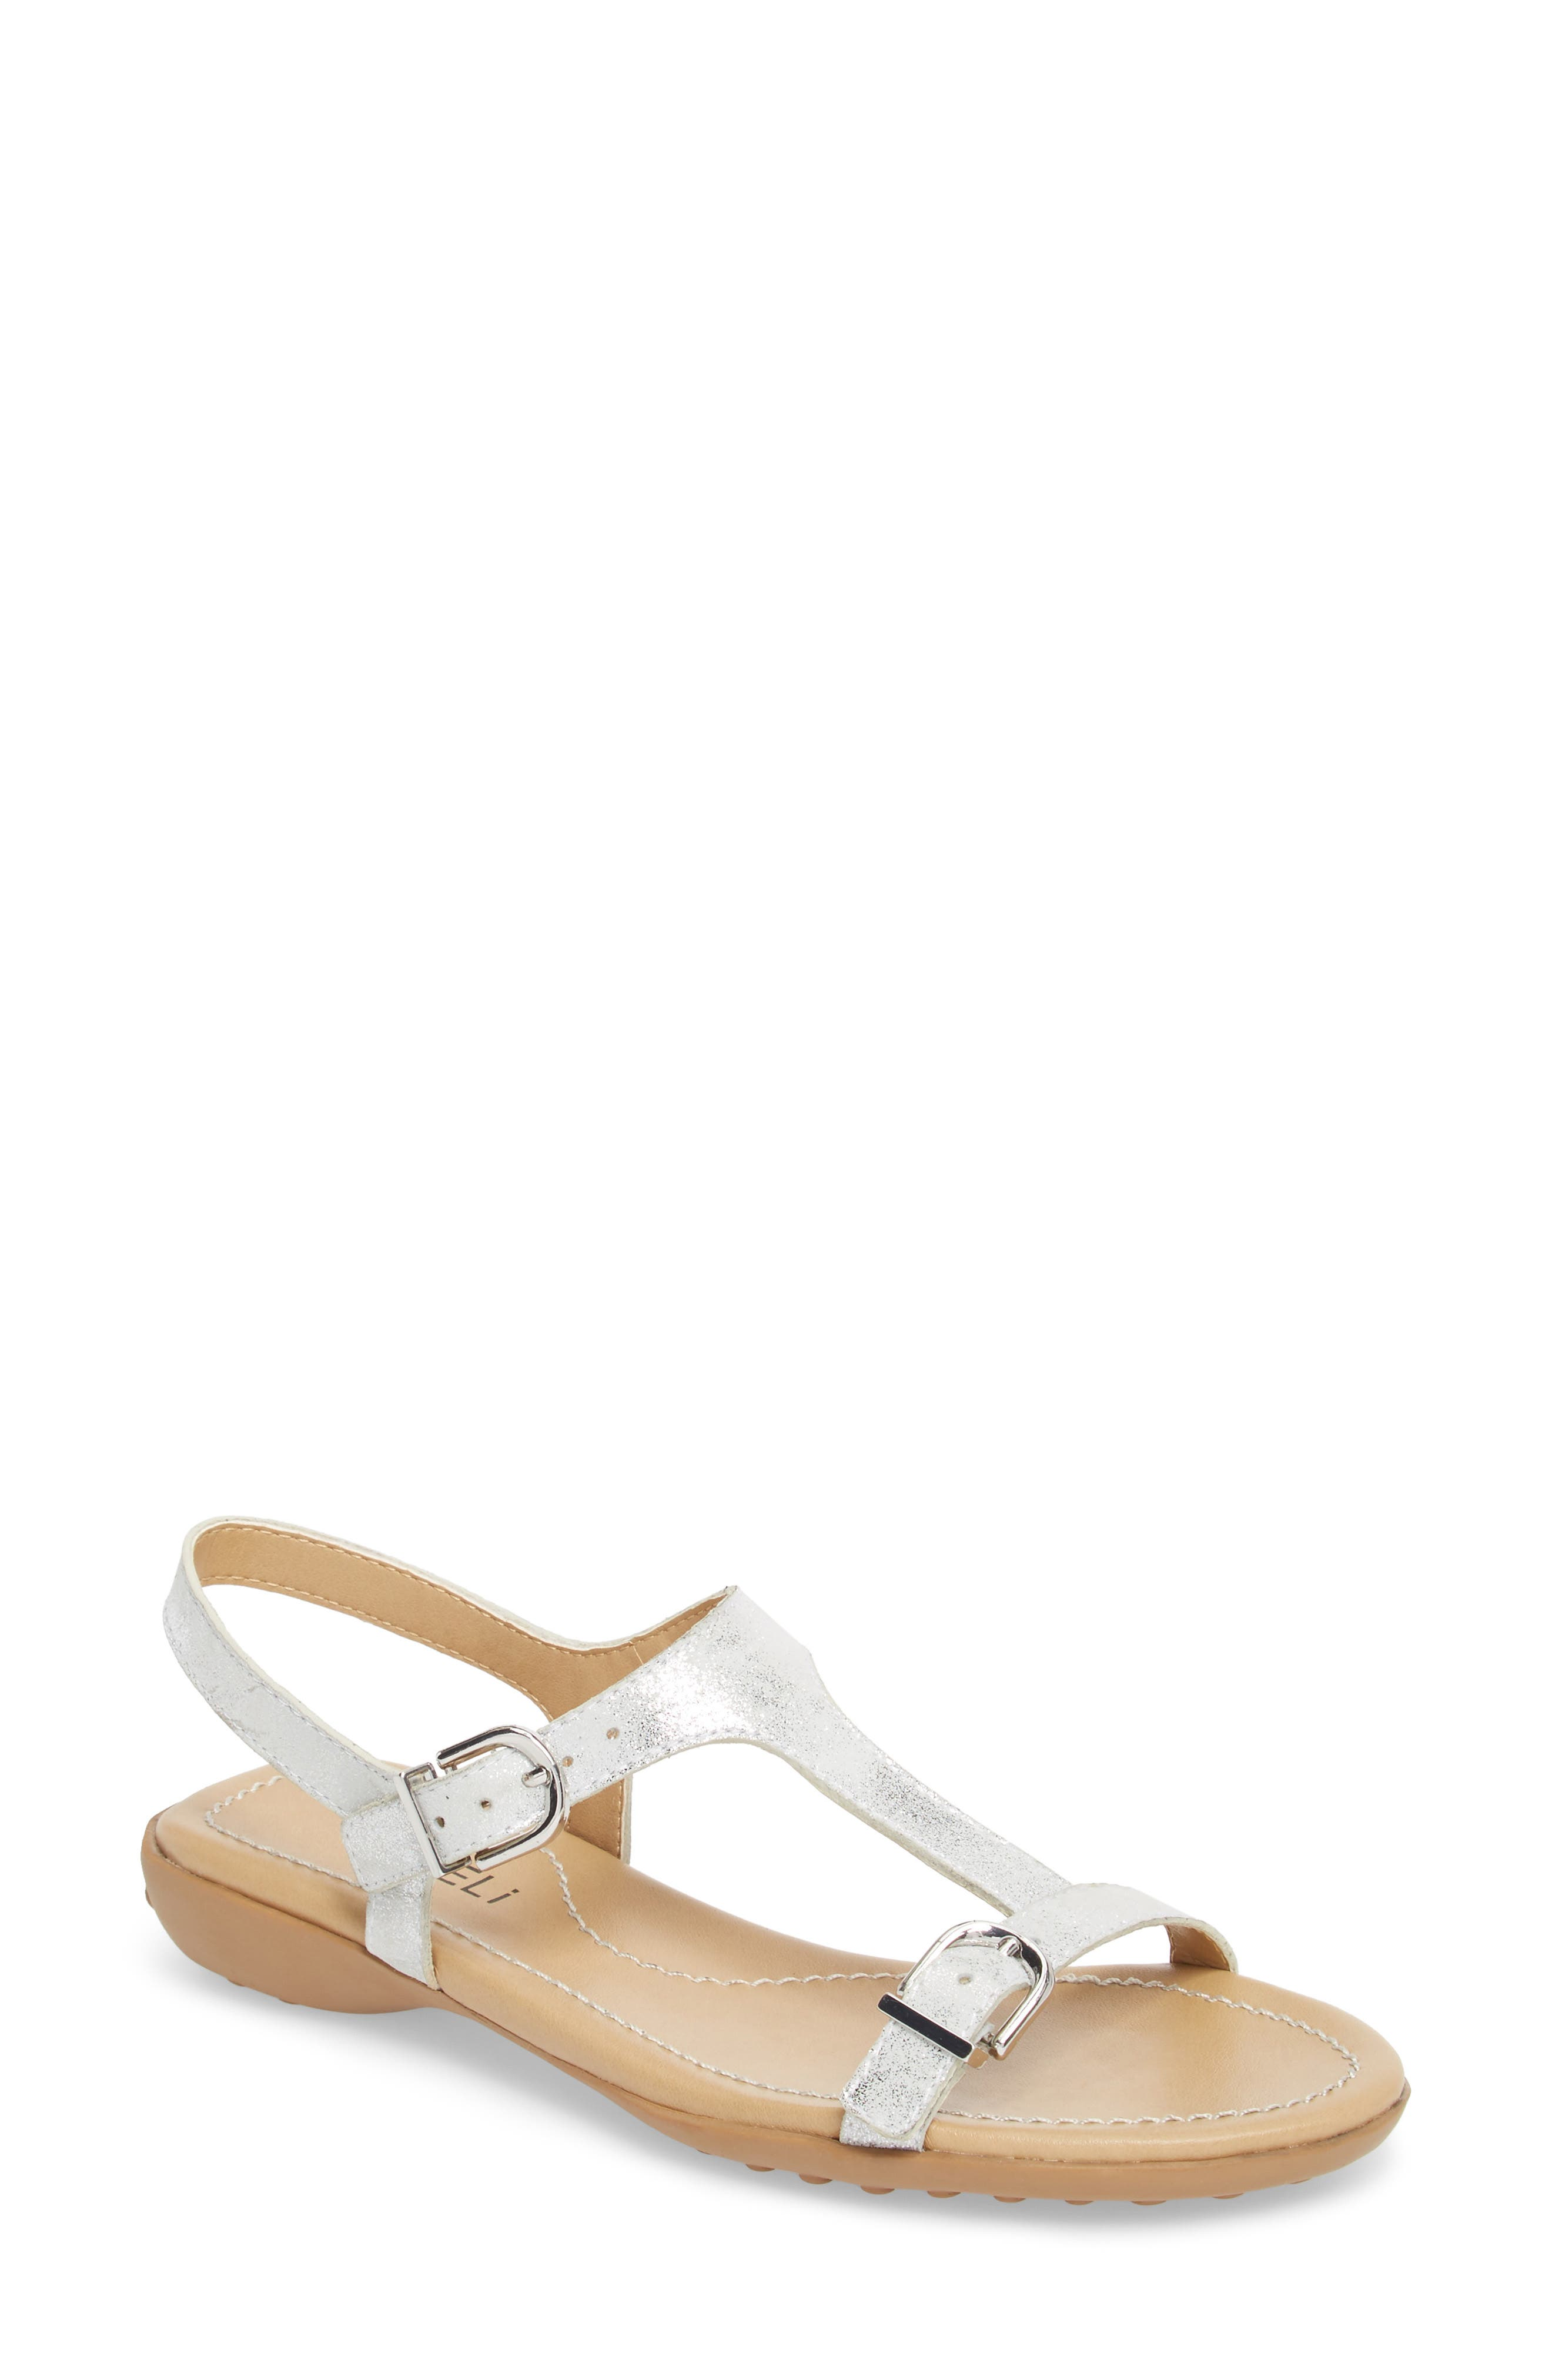 Taletha T-Strap Sandal,                         Main,                         color, Silver Printed Suede